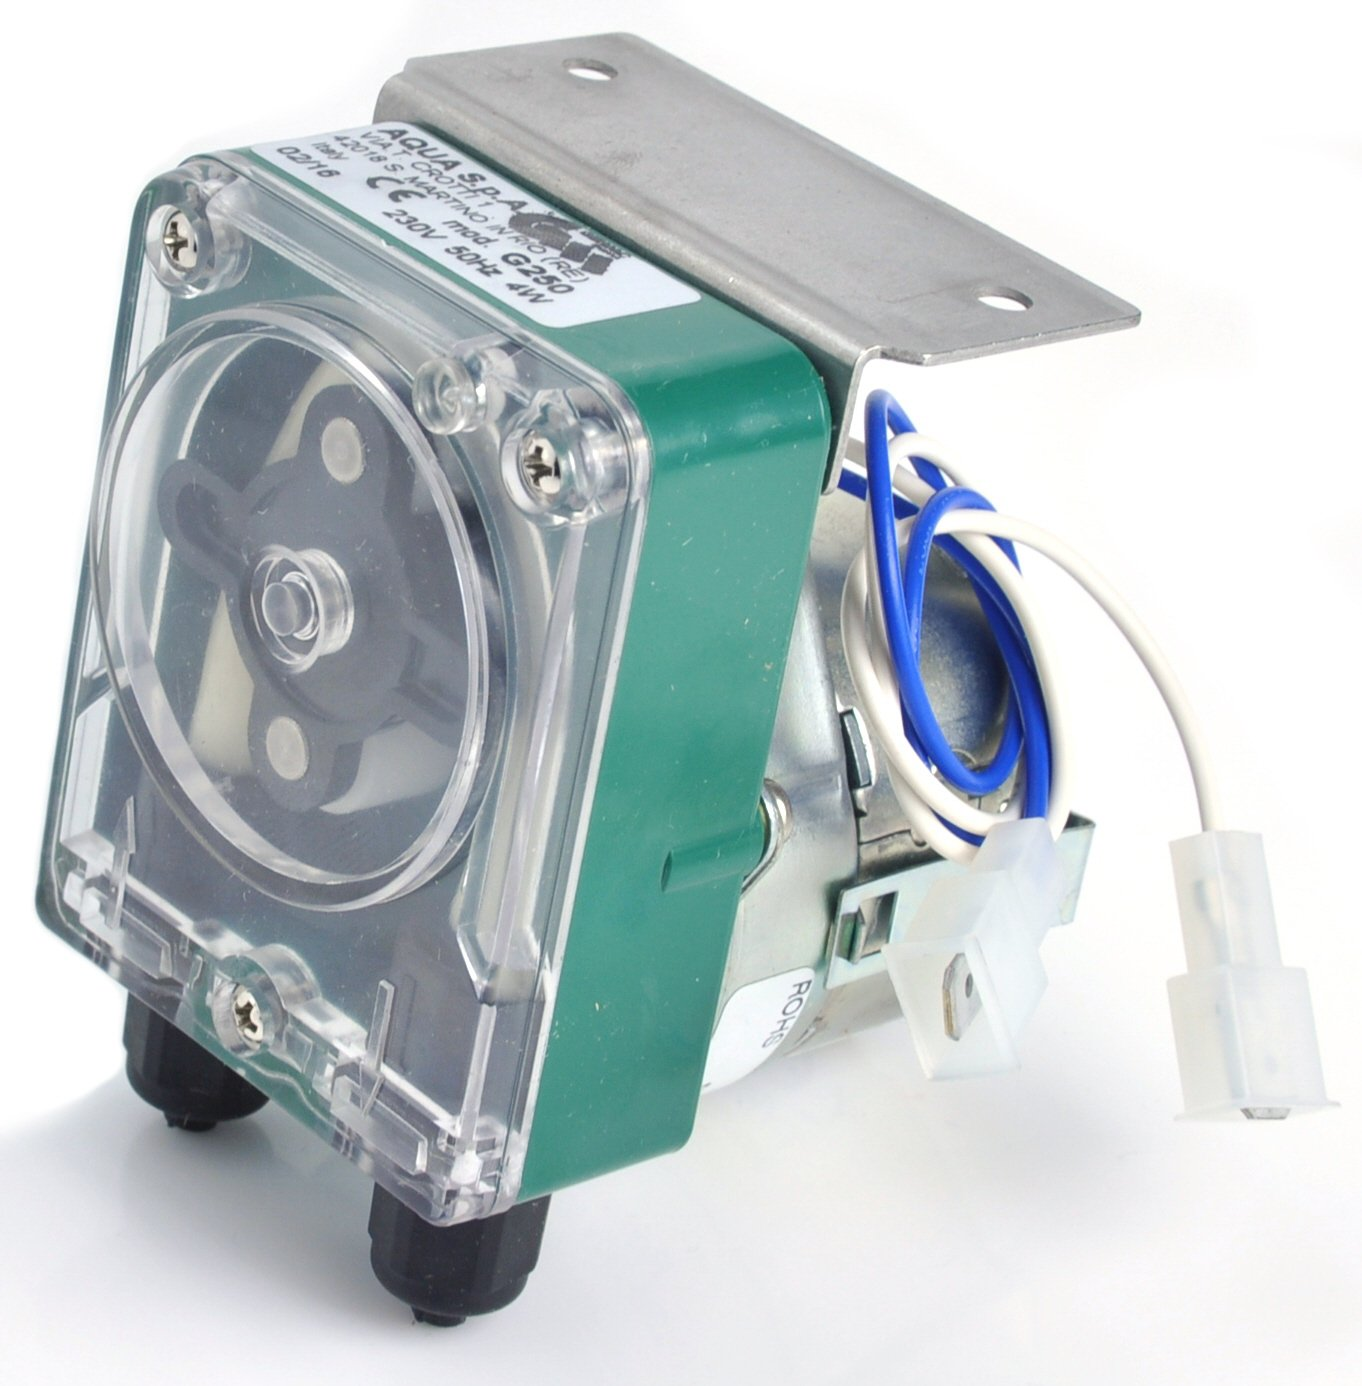 Germac Model G250 Detergent Dosing Pump